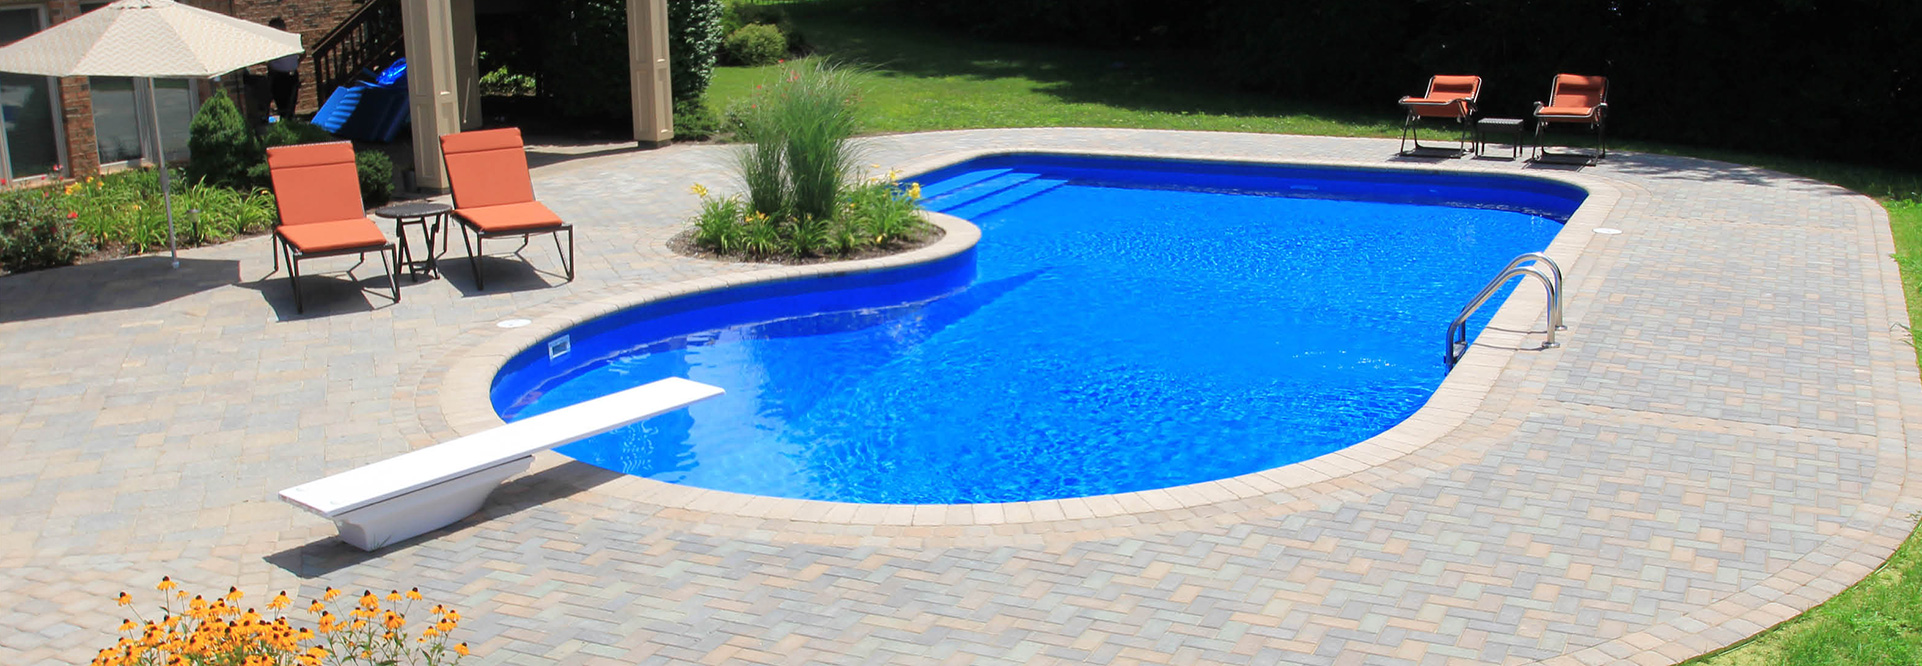 Knickerbocker Pools is your local expert for in-ground pools.